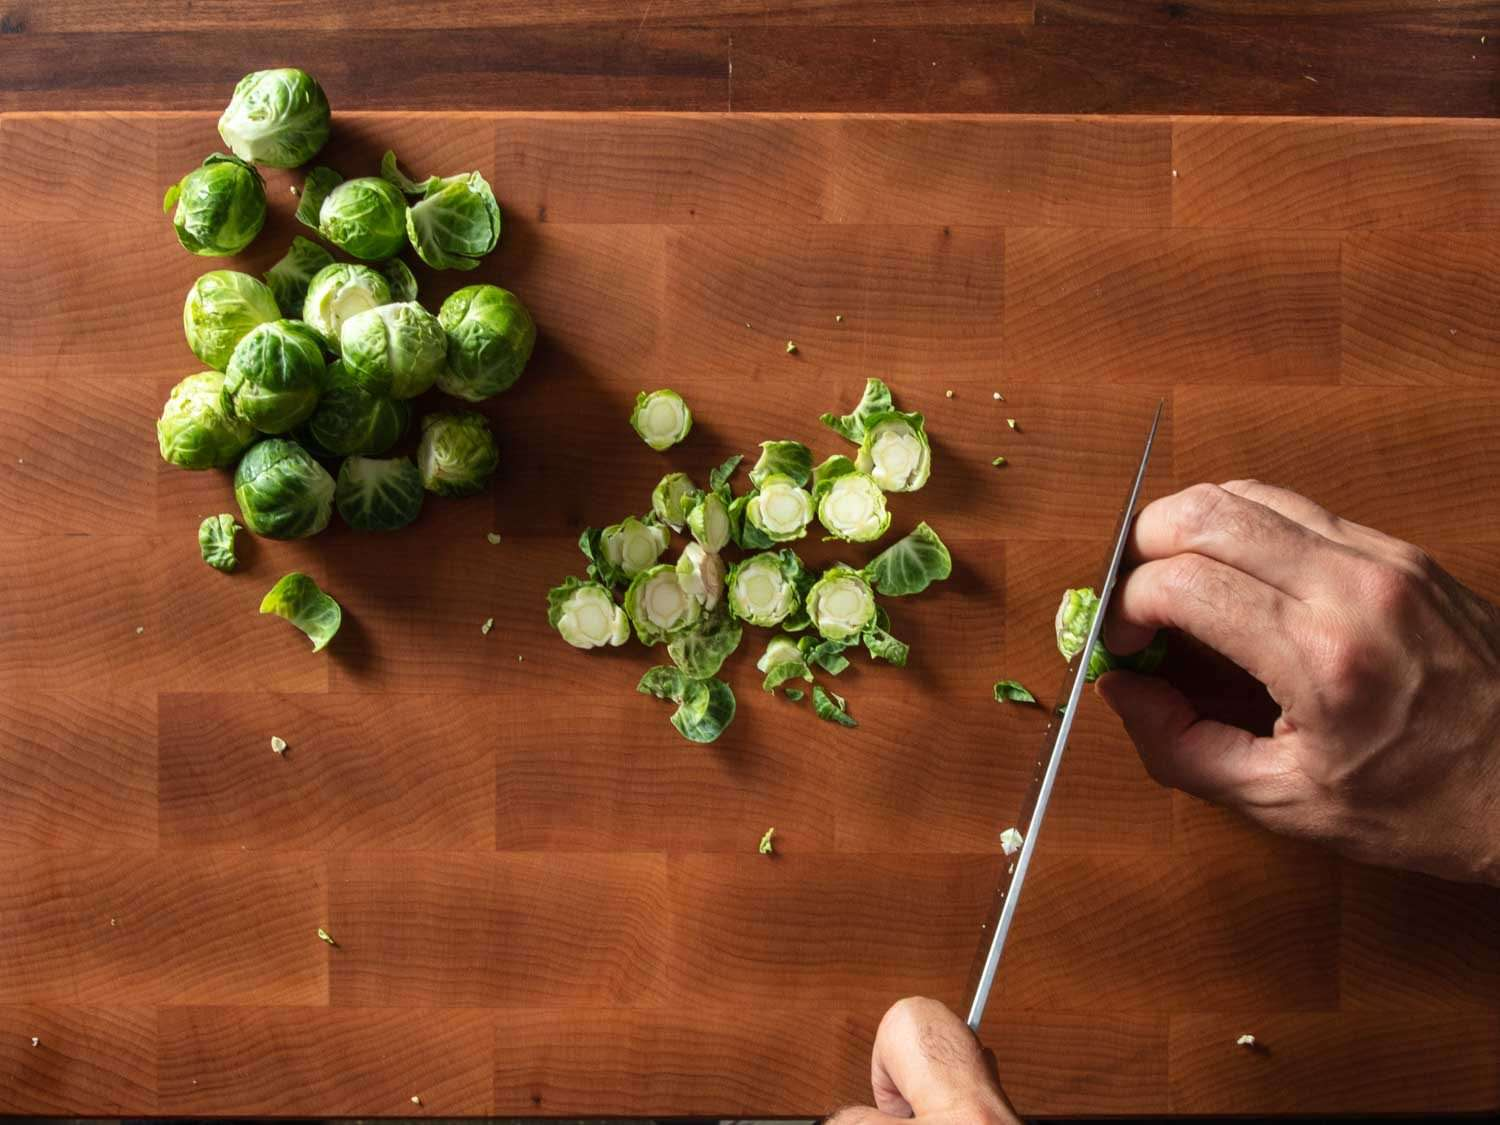 A top-down view of a cutting board loaded with a pile of Brussels sprouts; you can see the cook's hands holding a chef's knife and trimming away the base of each sprout efficiently